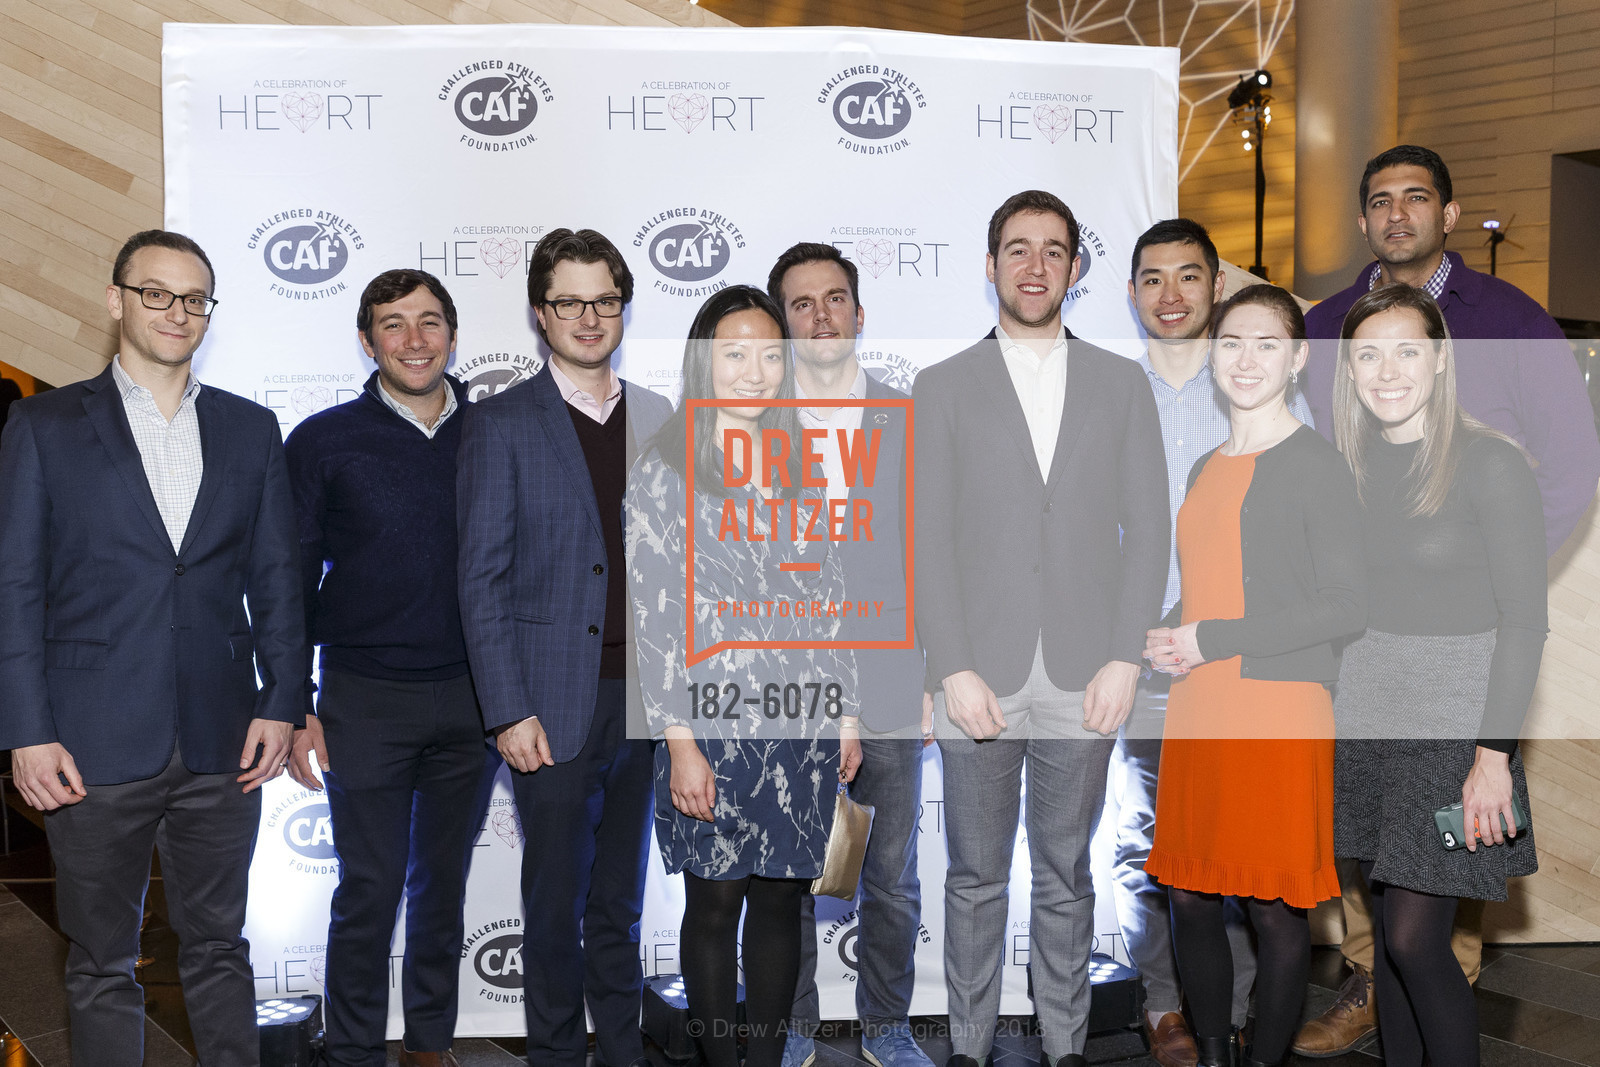 Josh Peck, Sammy Brown, Sharon Gee, Michael Naruda, Arthur Romeo, Jesse, Oliver Peck, Sandra Rutova, Jenny Walsh, Kunal Gulati, Challenged Athletes Foundation Inaugural Celebration of Heart Benefit 2018, SFMOMA. 151 Third Street, February 27th, 2018